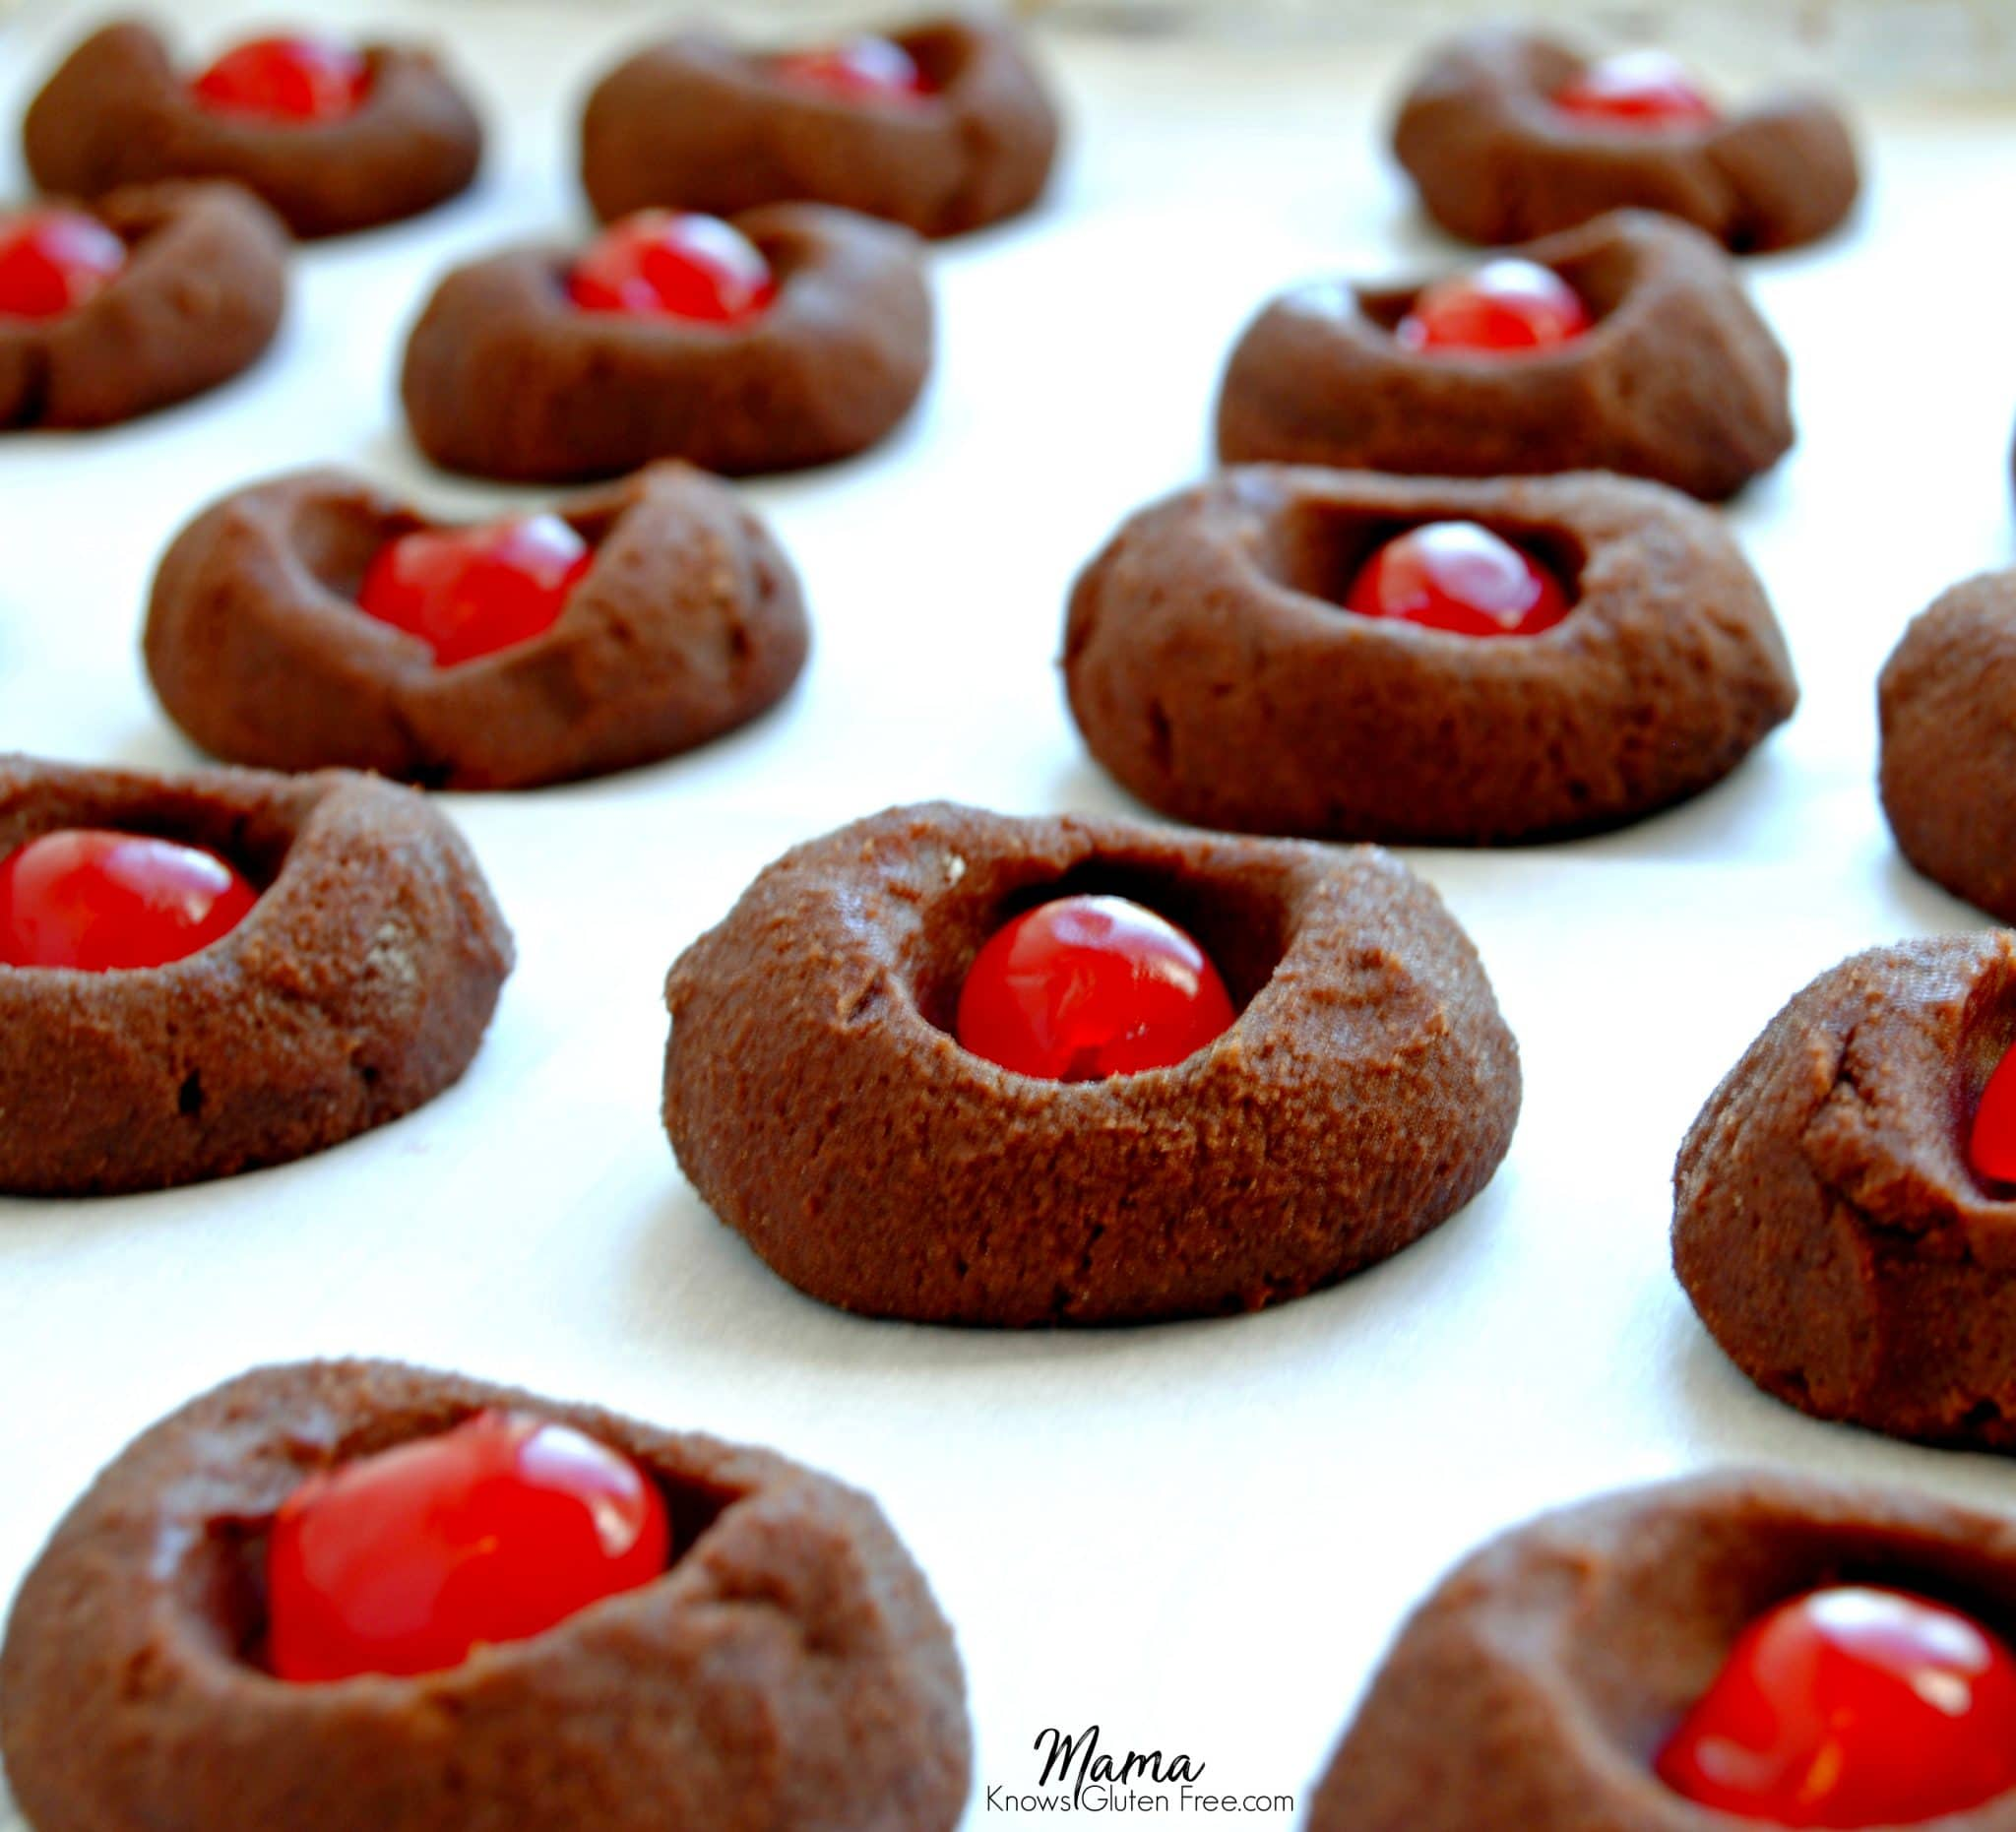 Gluten-Free Chocolate Thumbprint Cookies batter with cherries in them